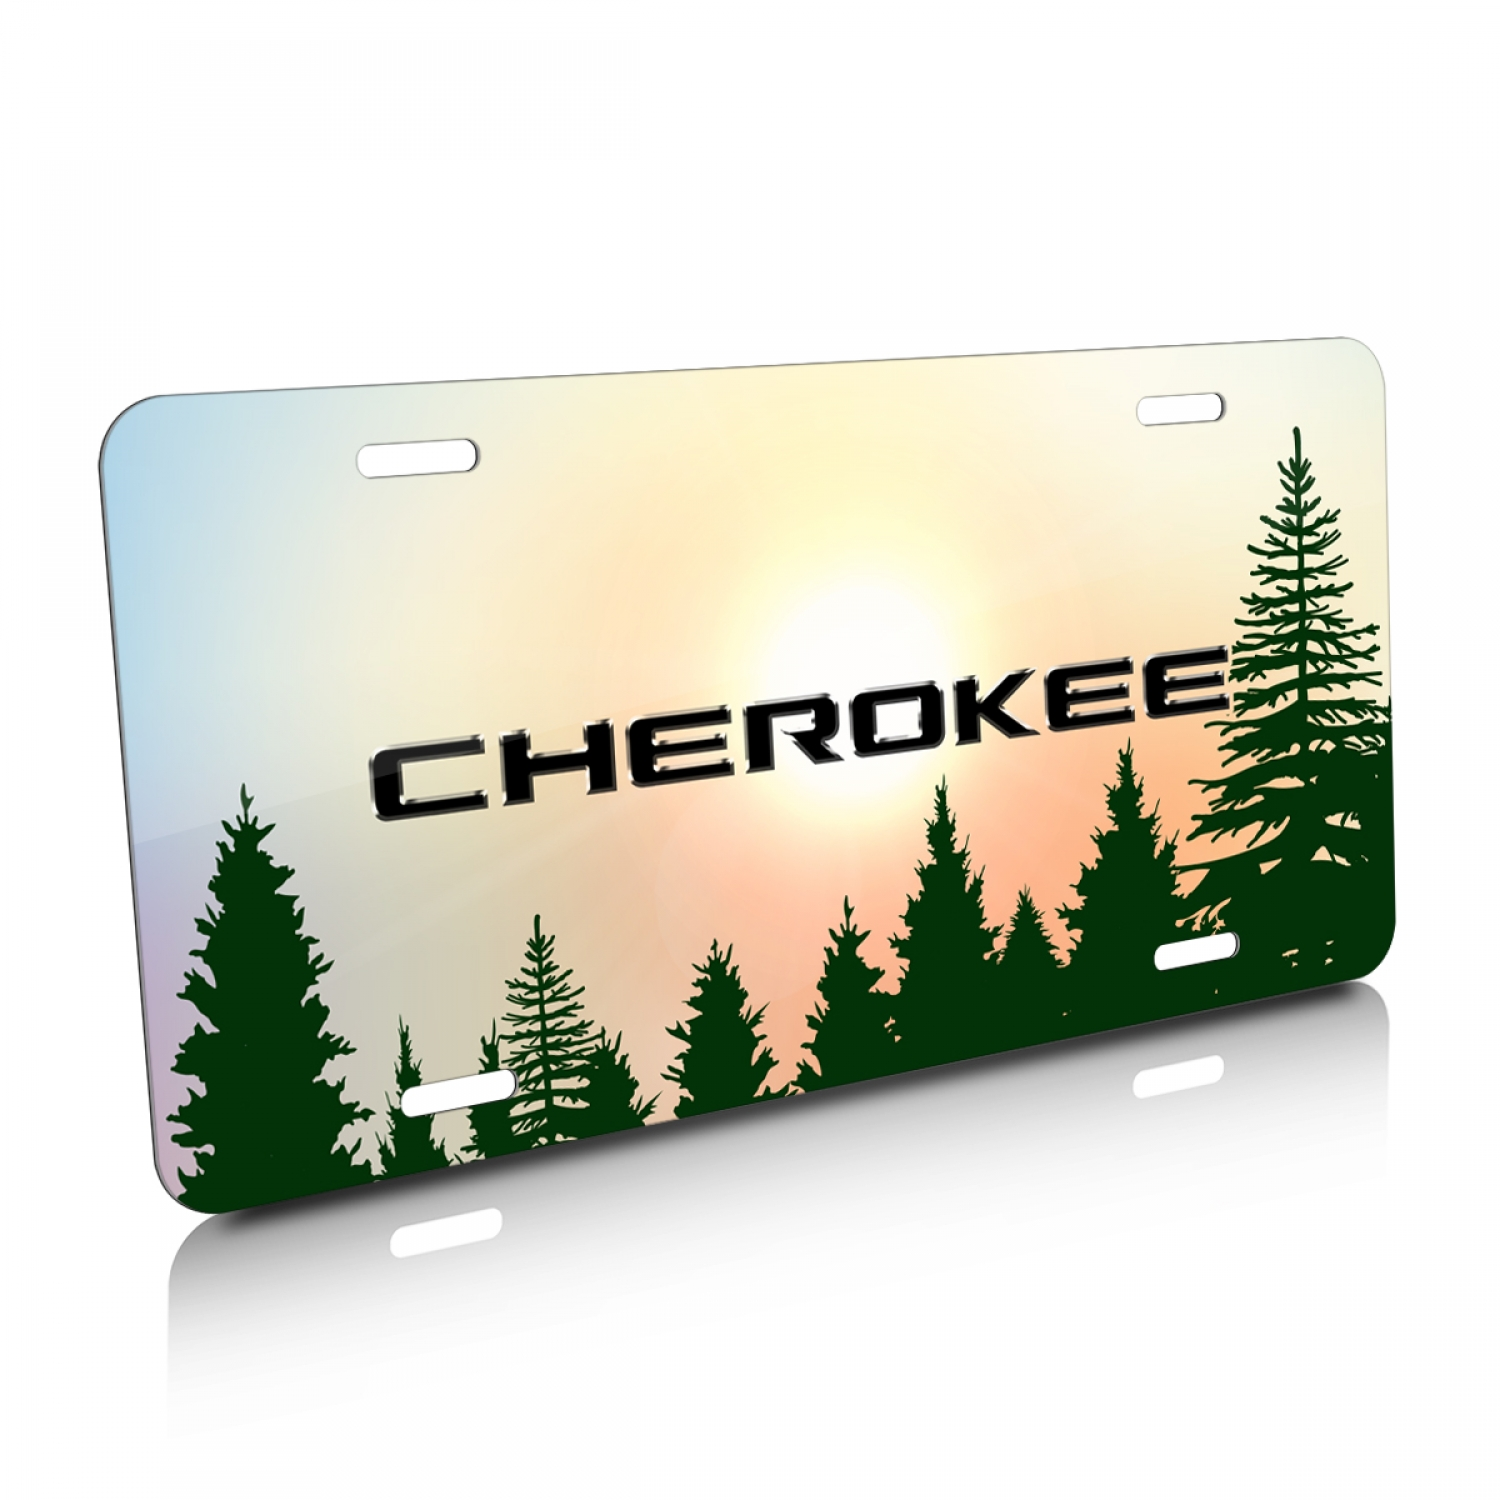 Jeep Cherokee Green Forrest Sillhouette Graphic Aluminum License Plate